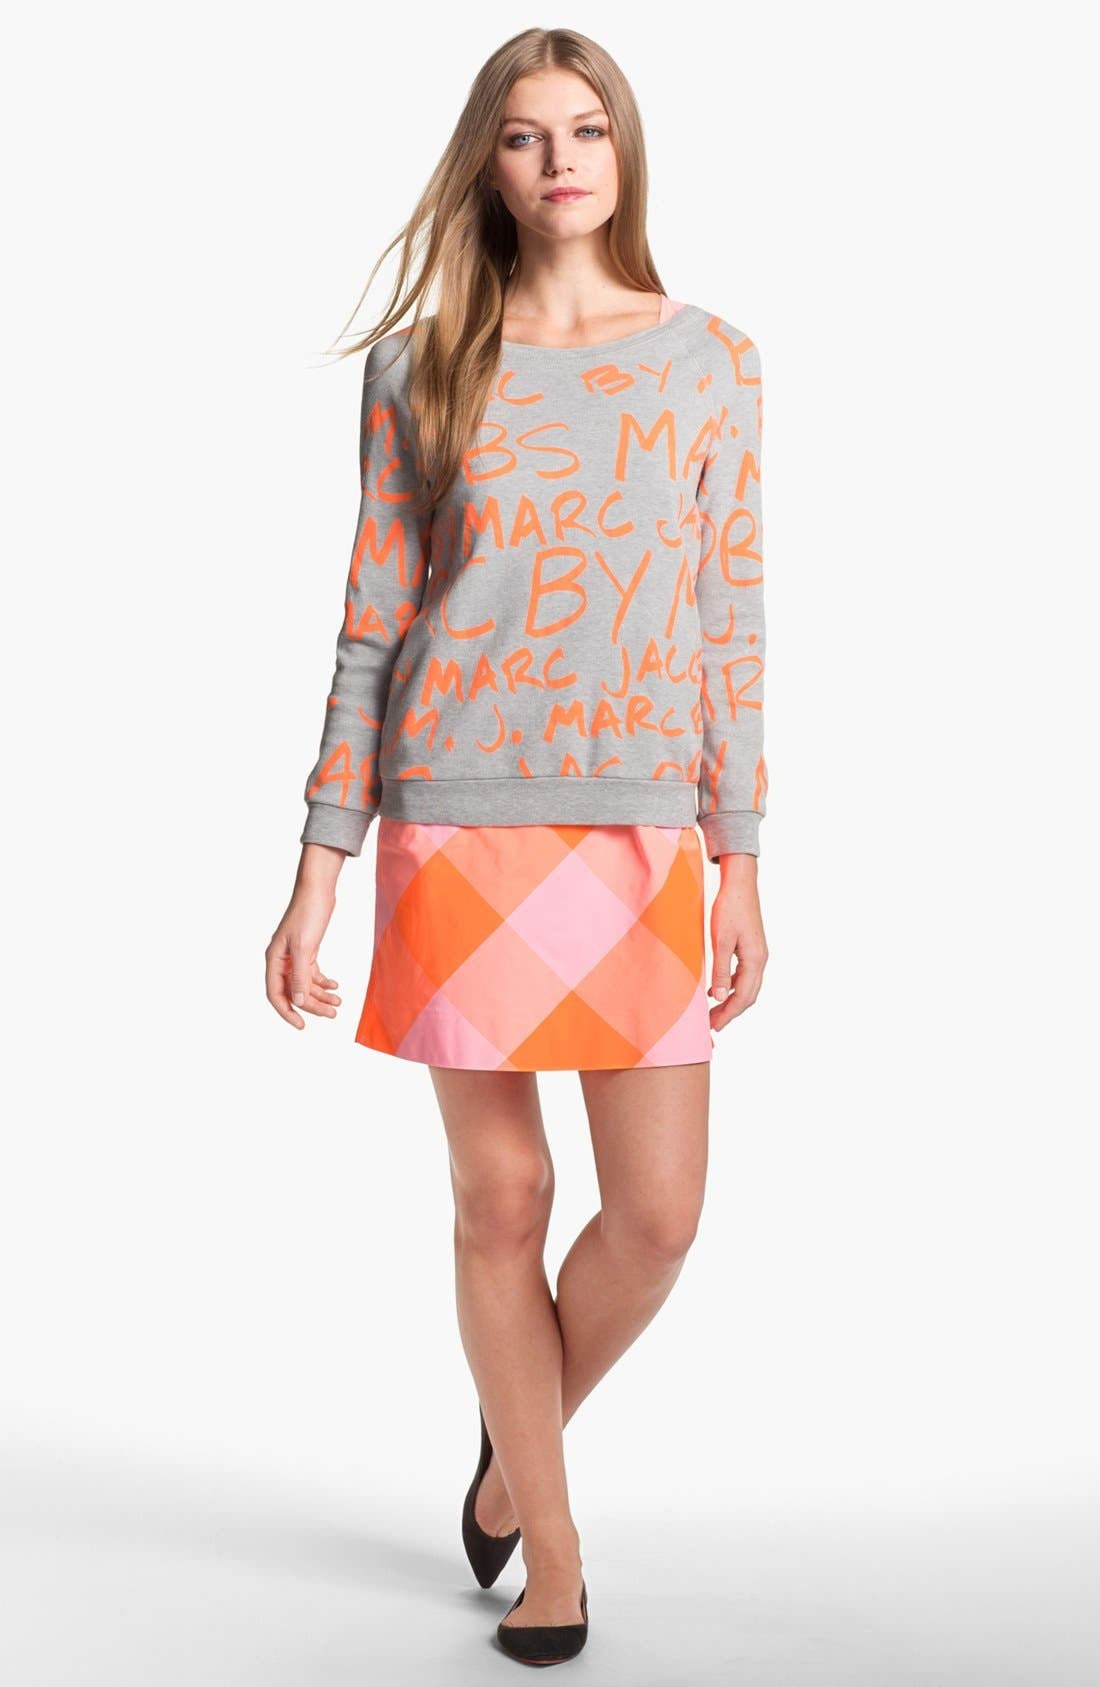 Main Image - MARC BY MARC JACOBS 'MBMJ' Sweatshirt